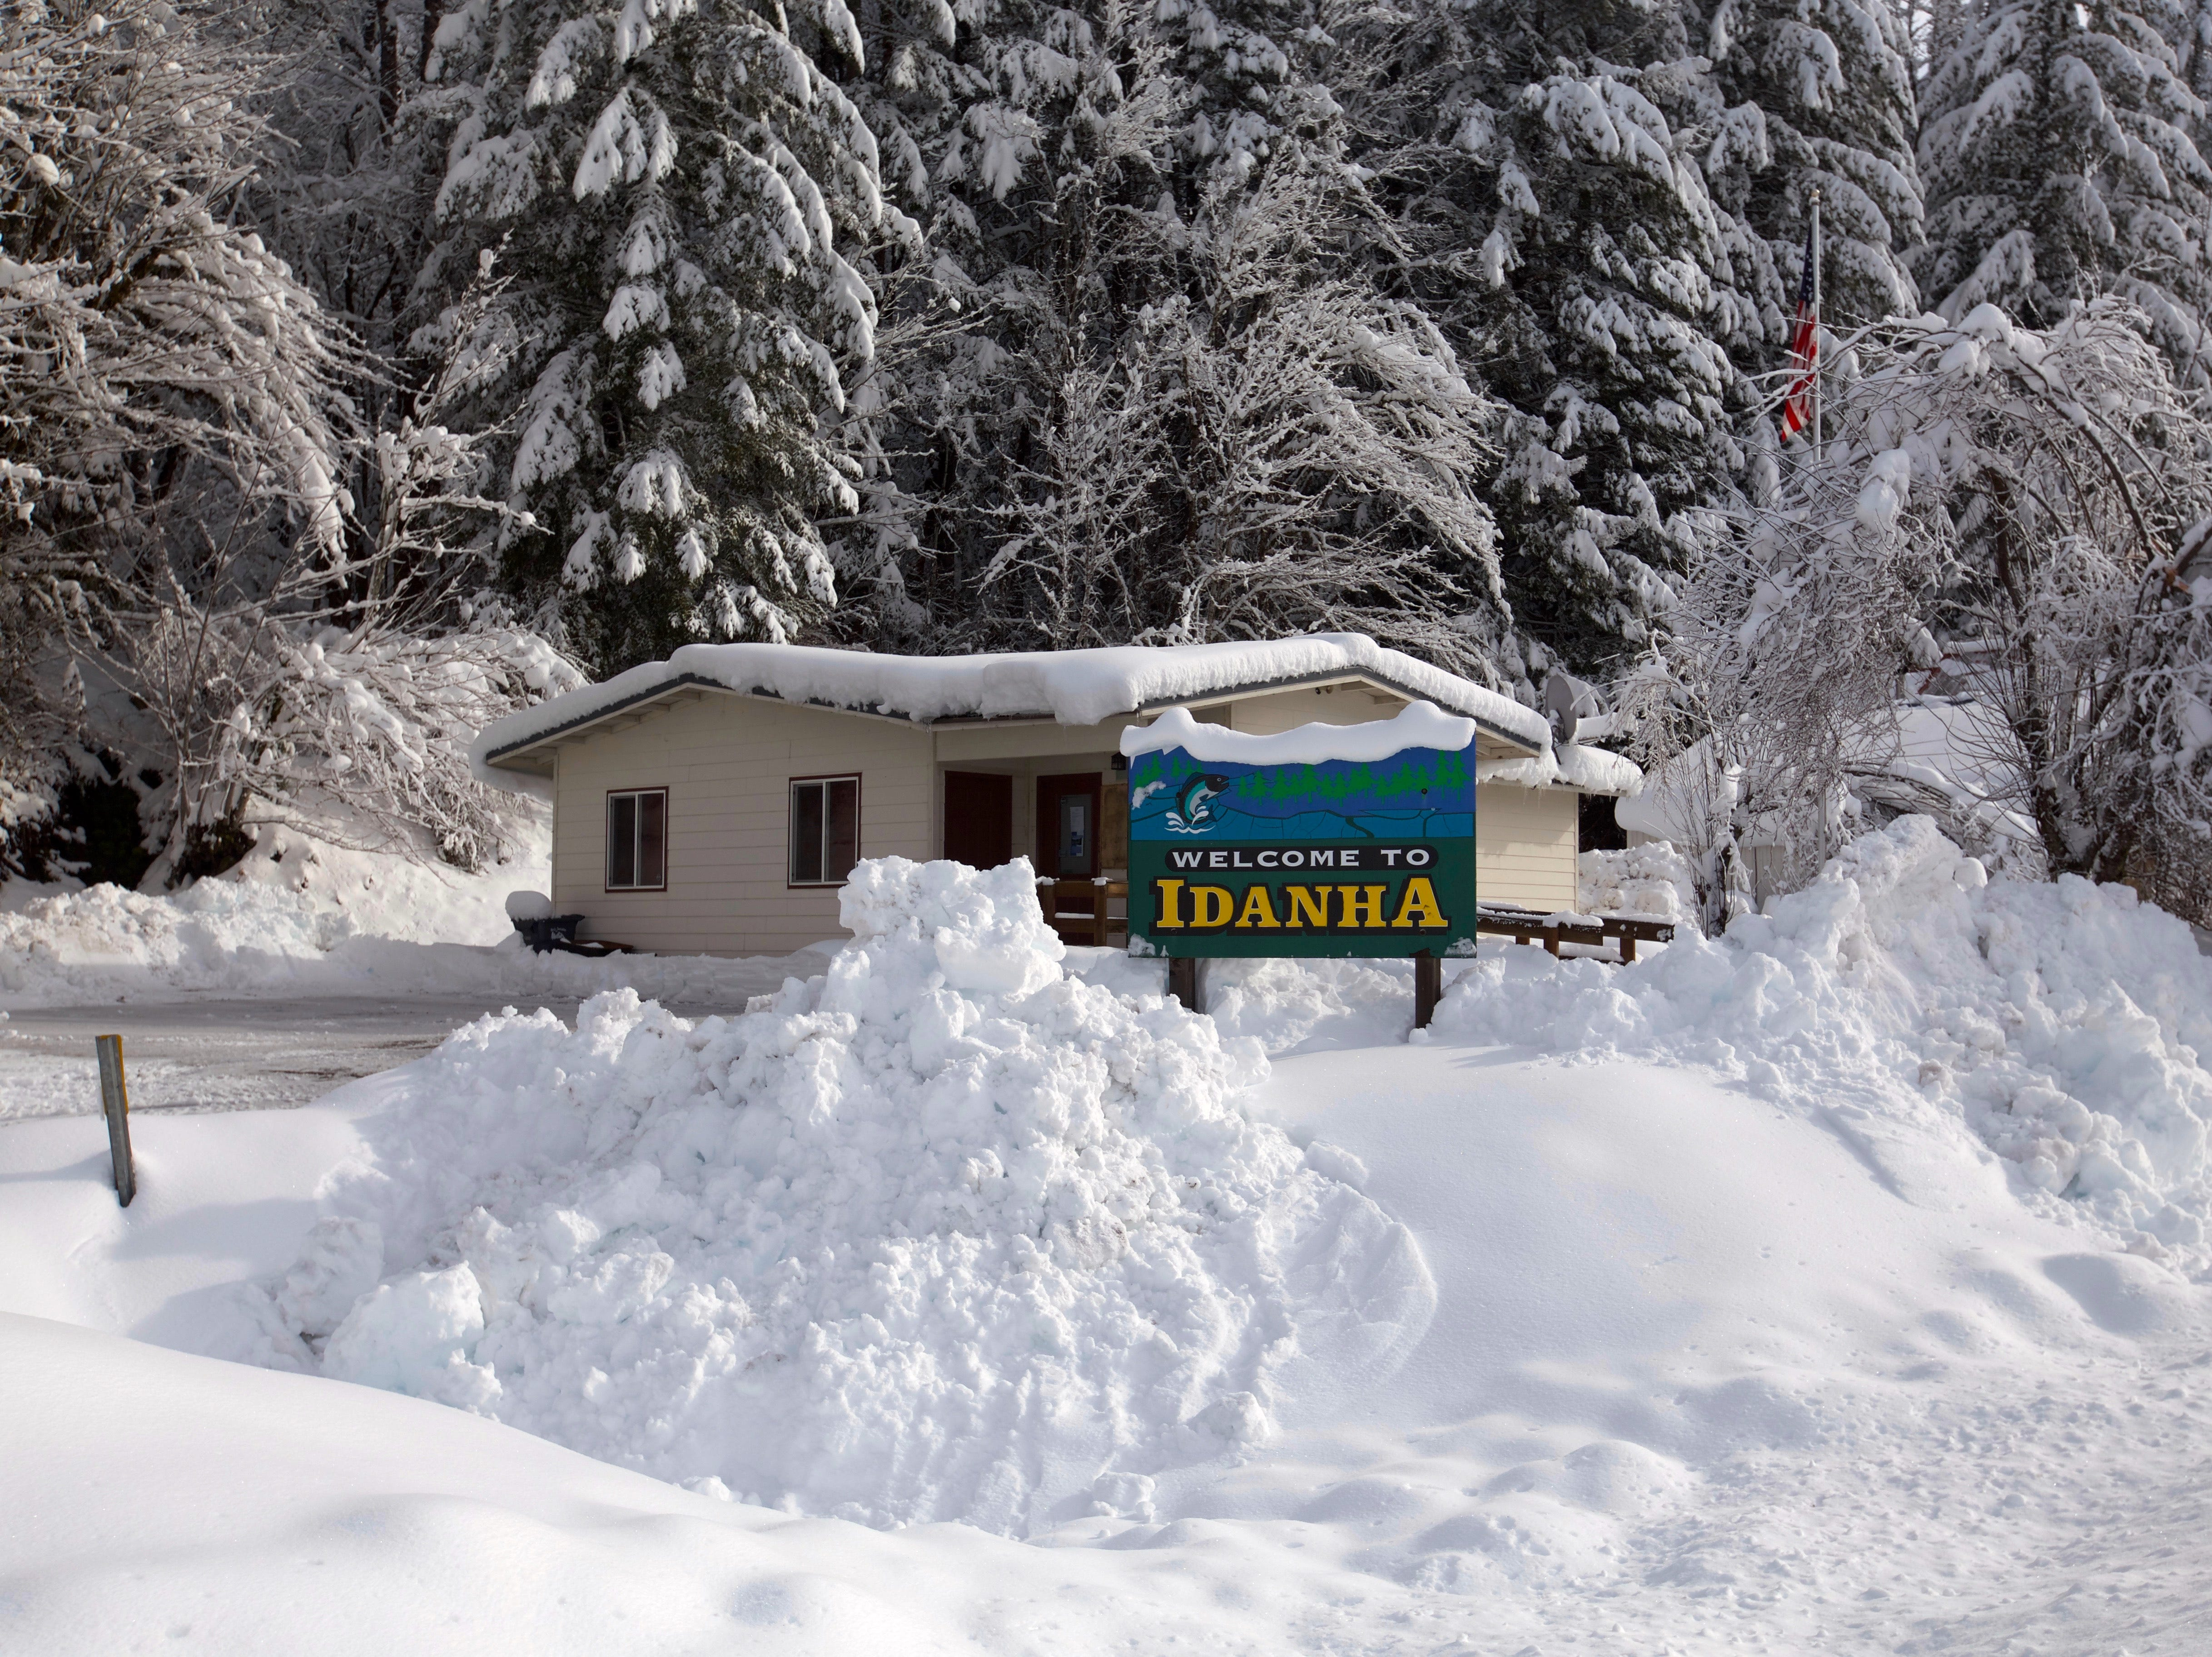 Small town of Idanha covered in snow.